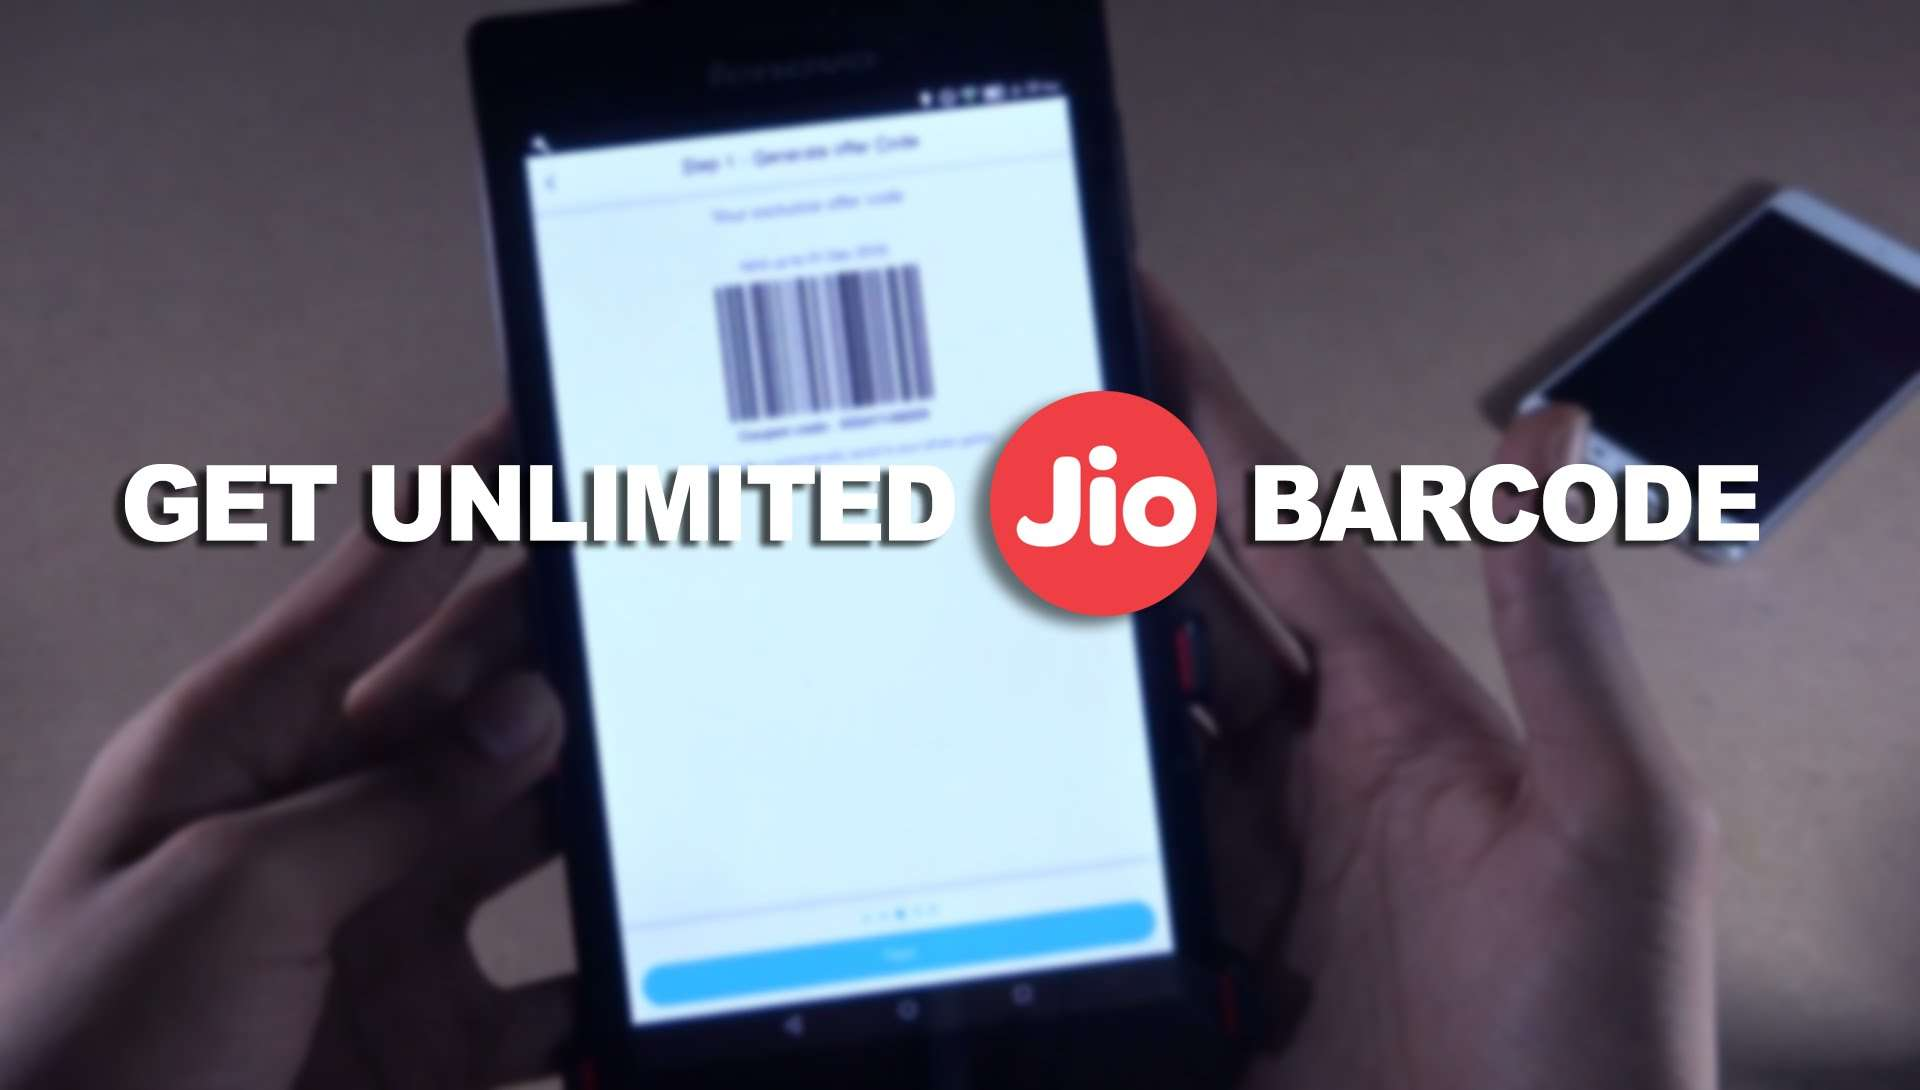 how to get unlimited jio barcode